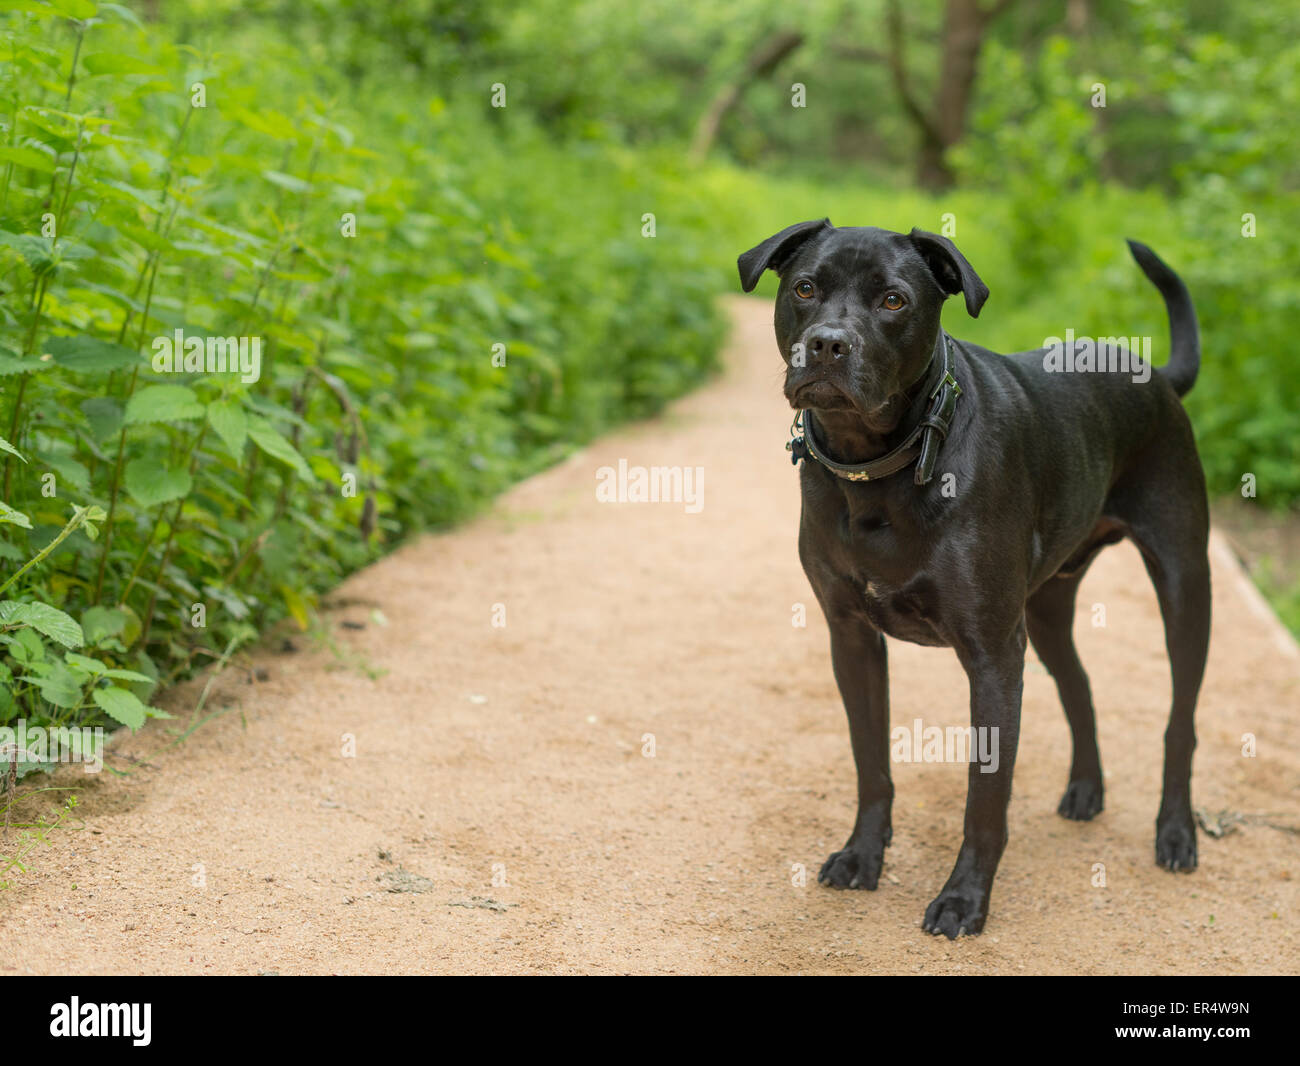 Black dog wondering in the woods. - Stock Image